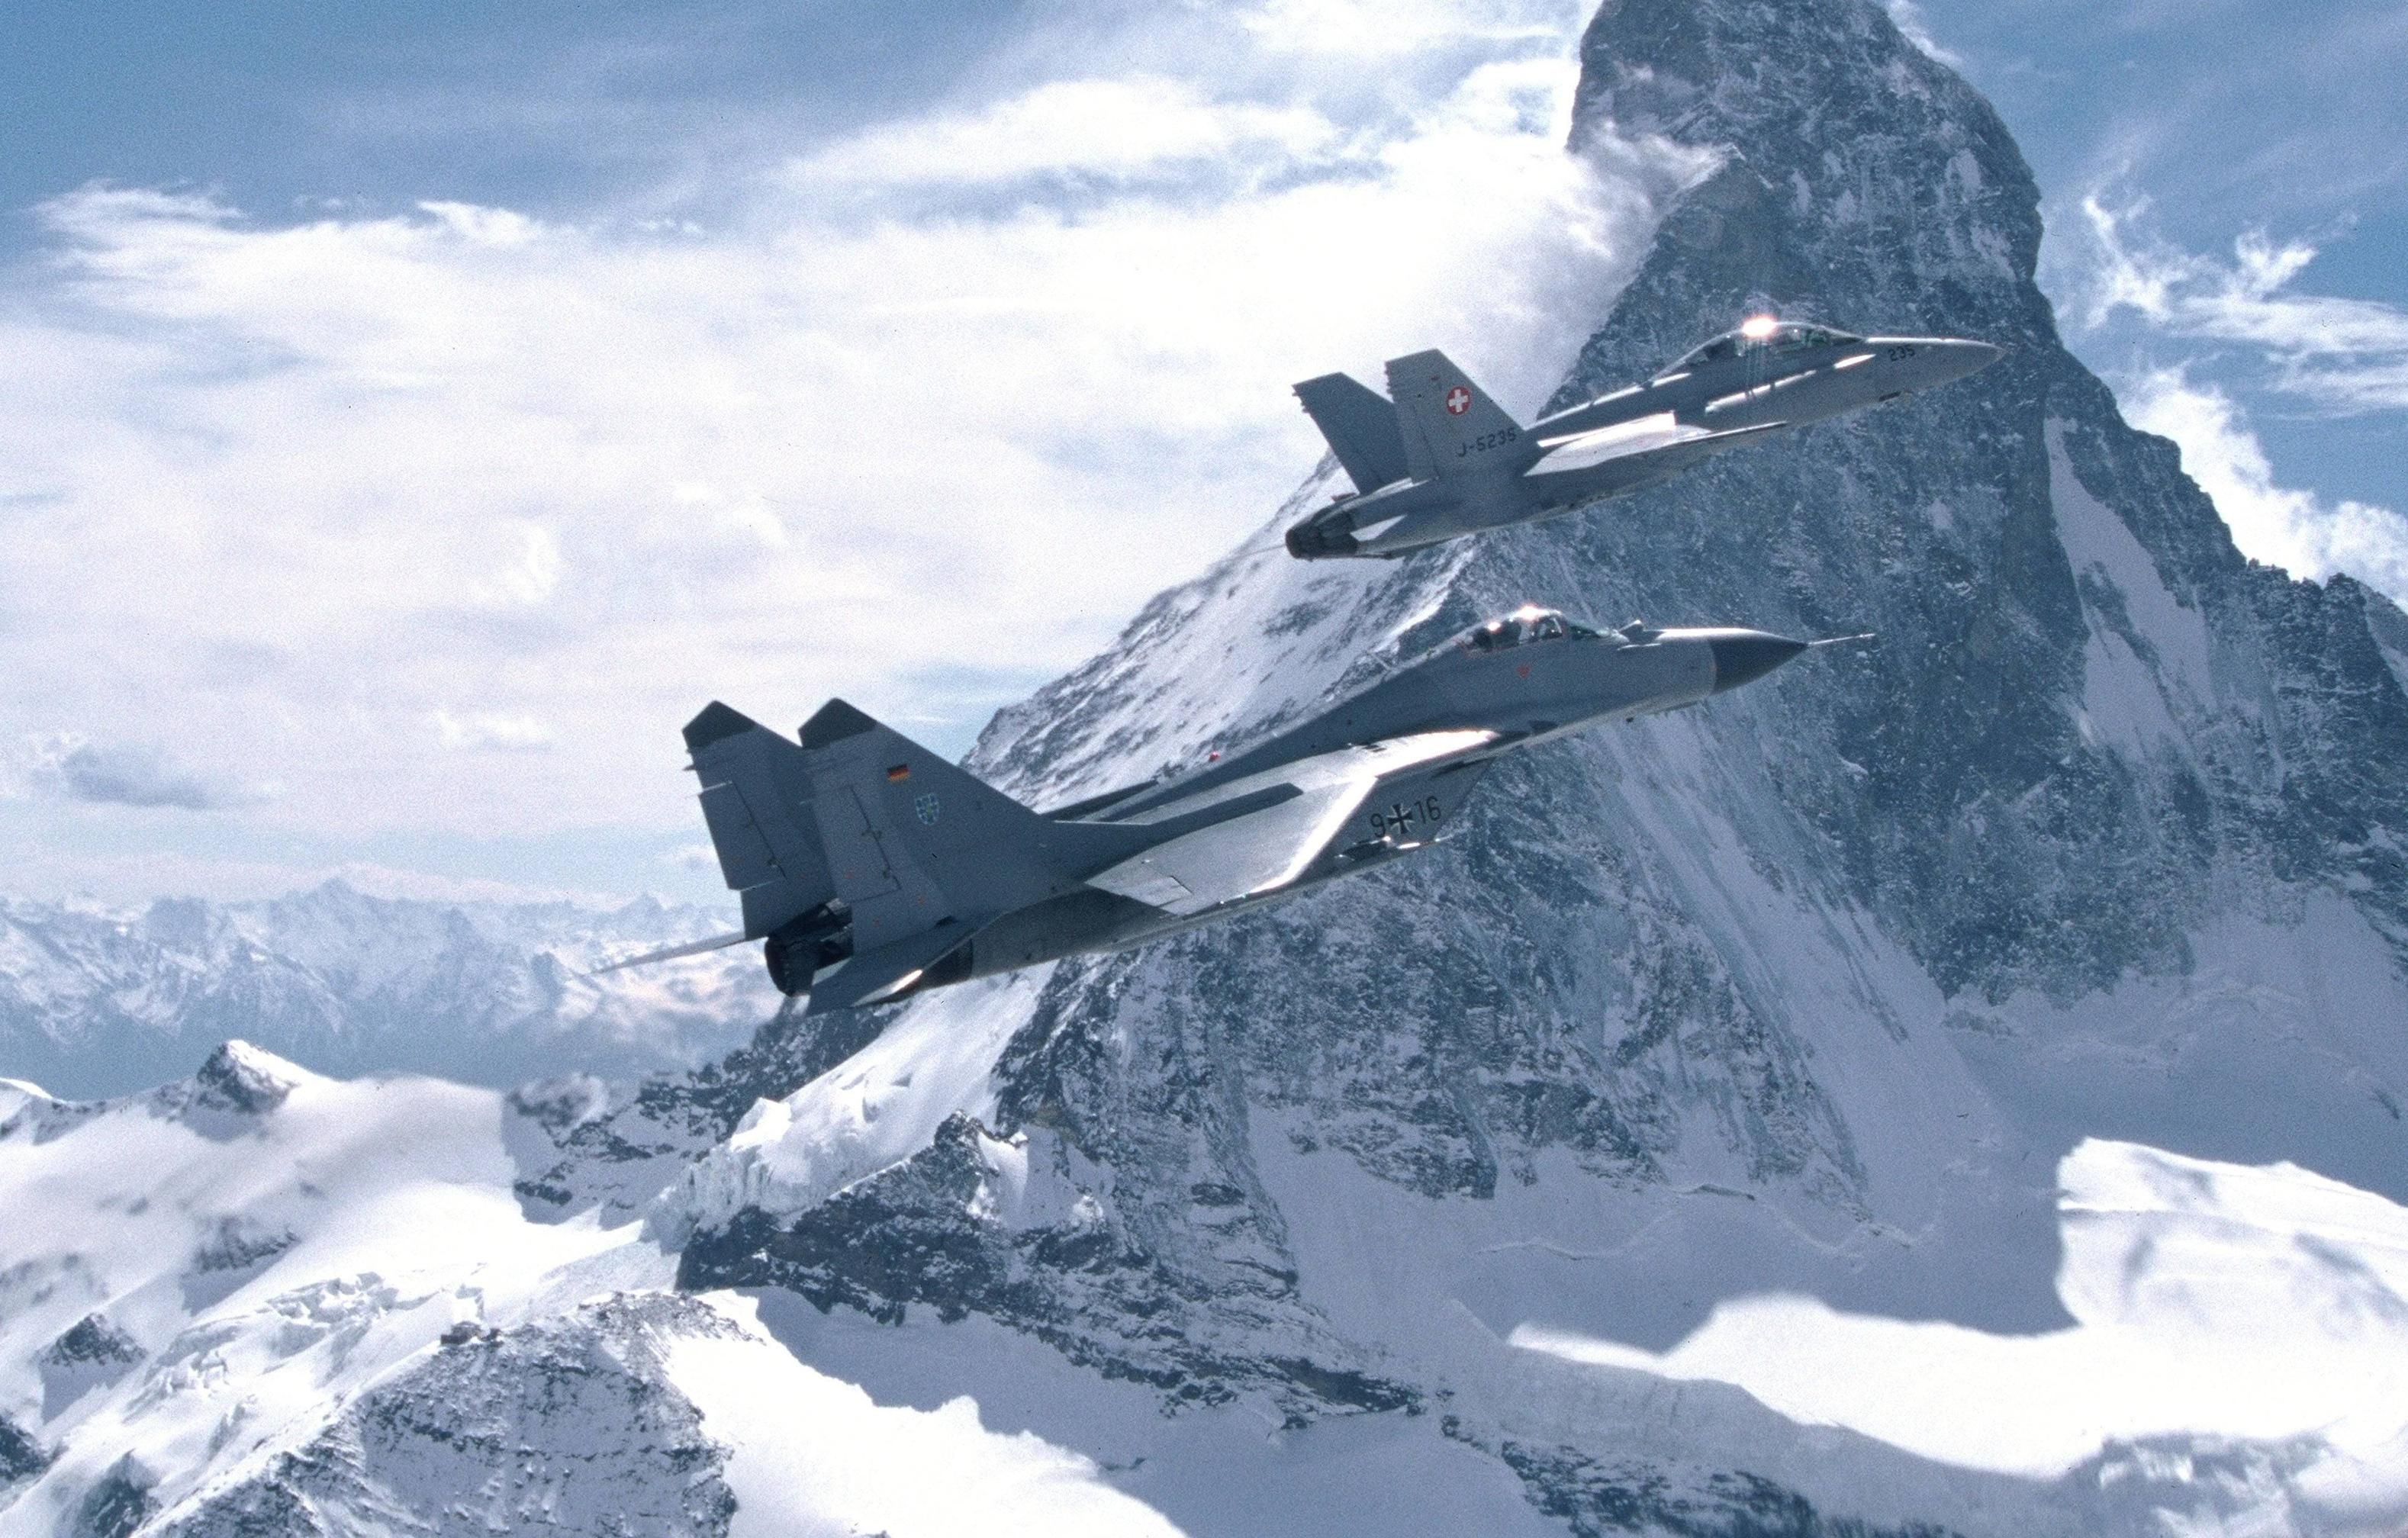 Swiss Air Force F18 and German Luftwaffe MiG29 next to